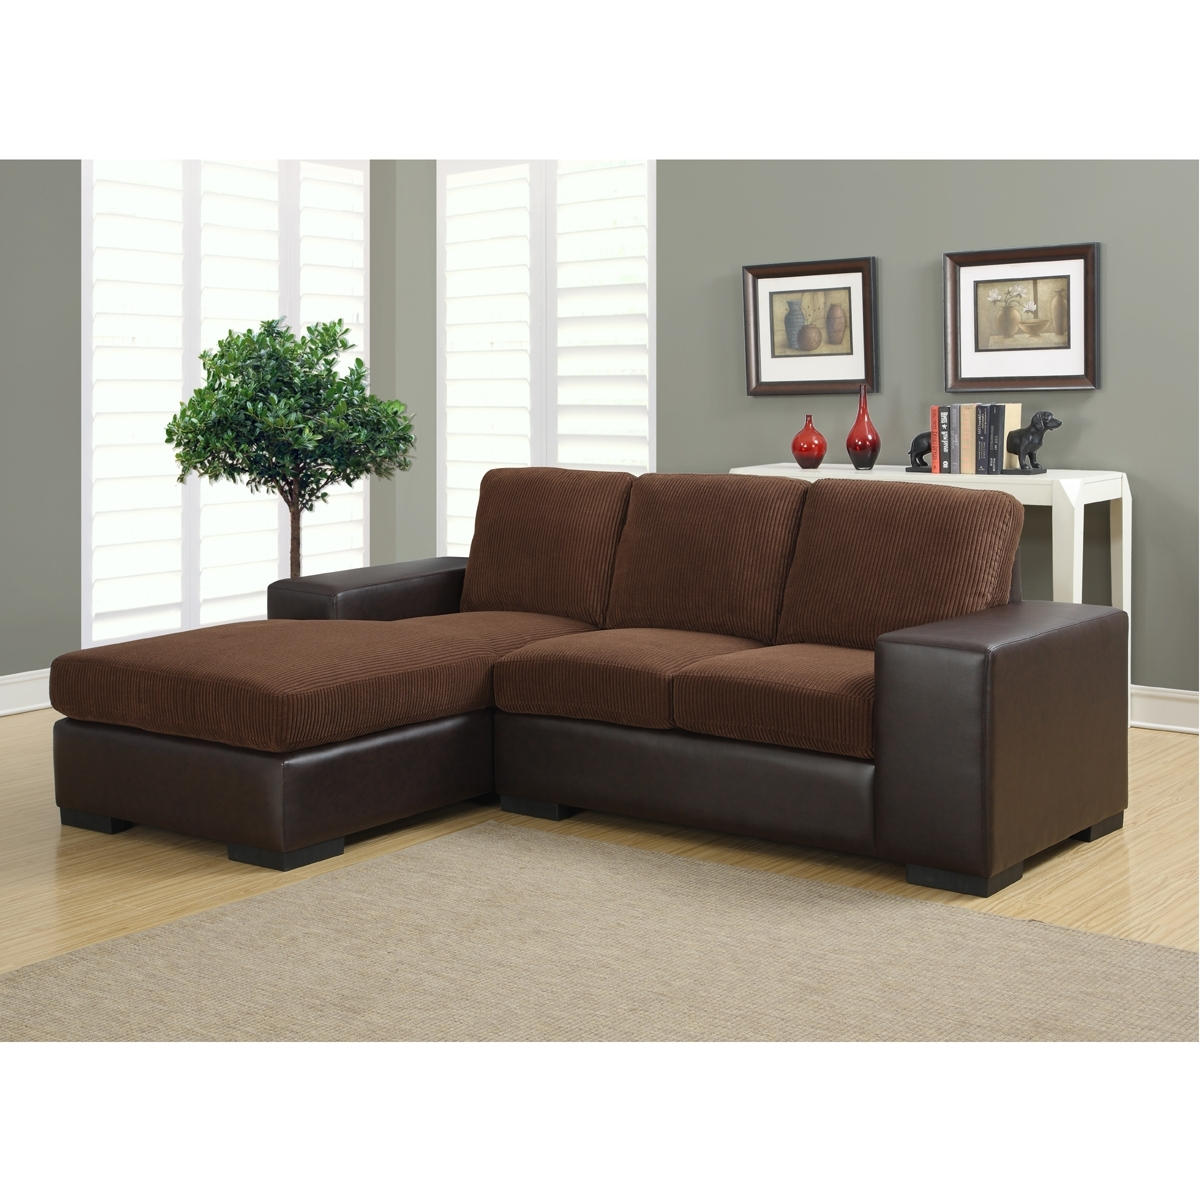 Modern Sectional Sofas In Brown Corduroy With Regard To Famous Sectional Sofas For Condos (Gallery 4 of 20)